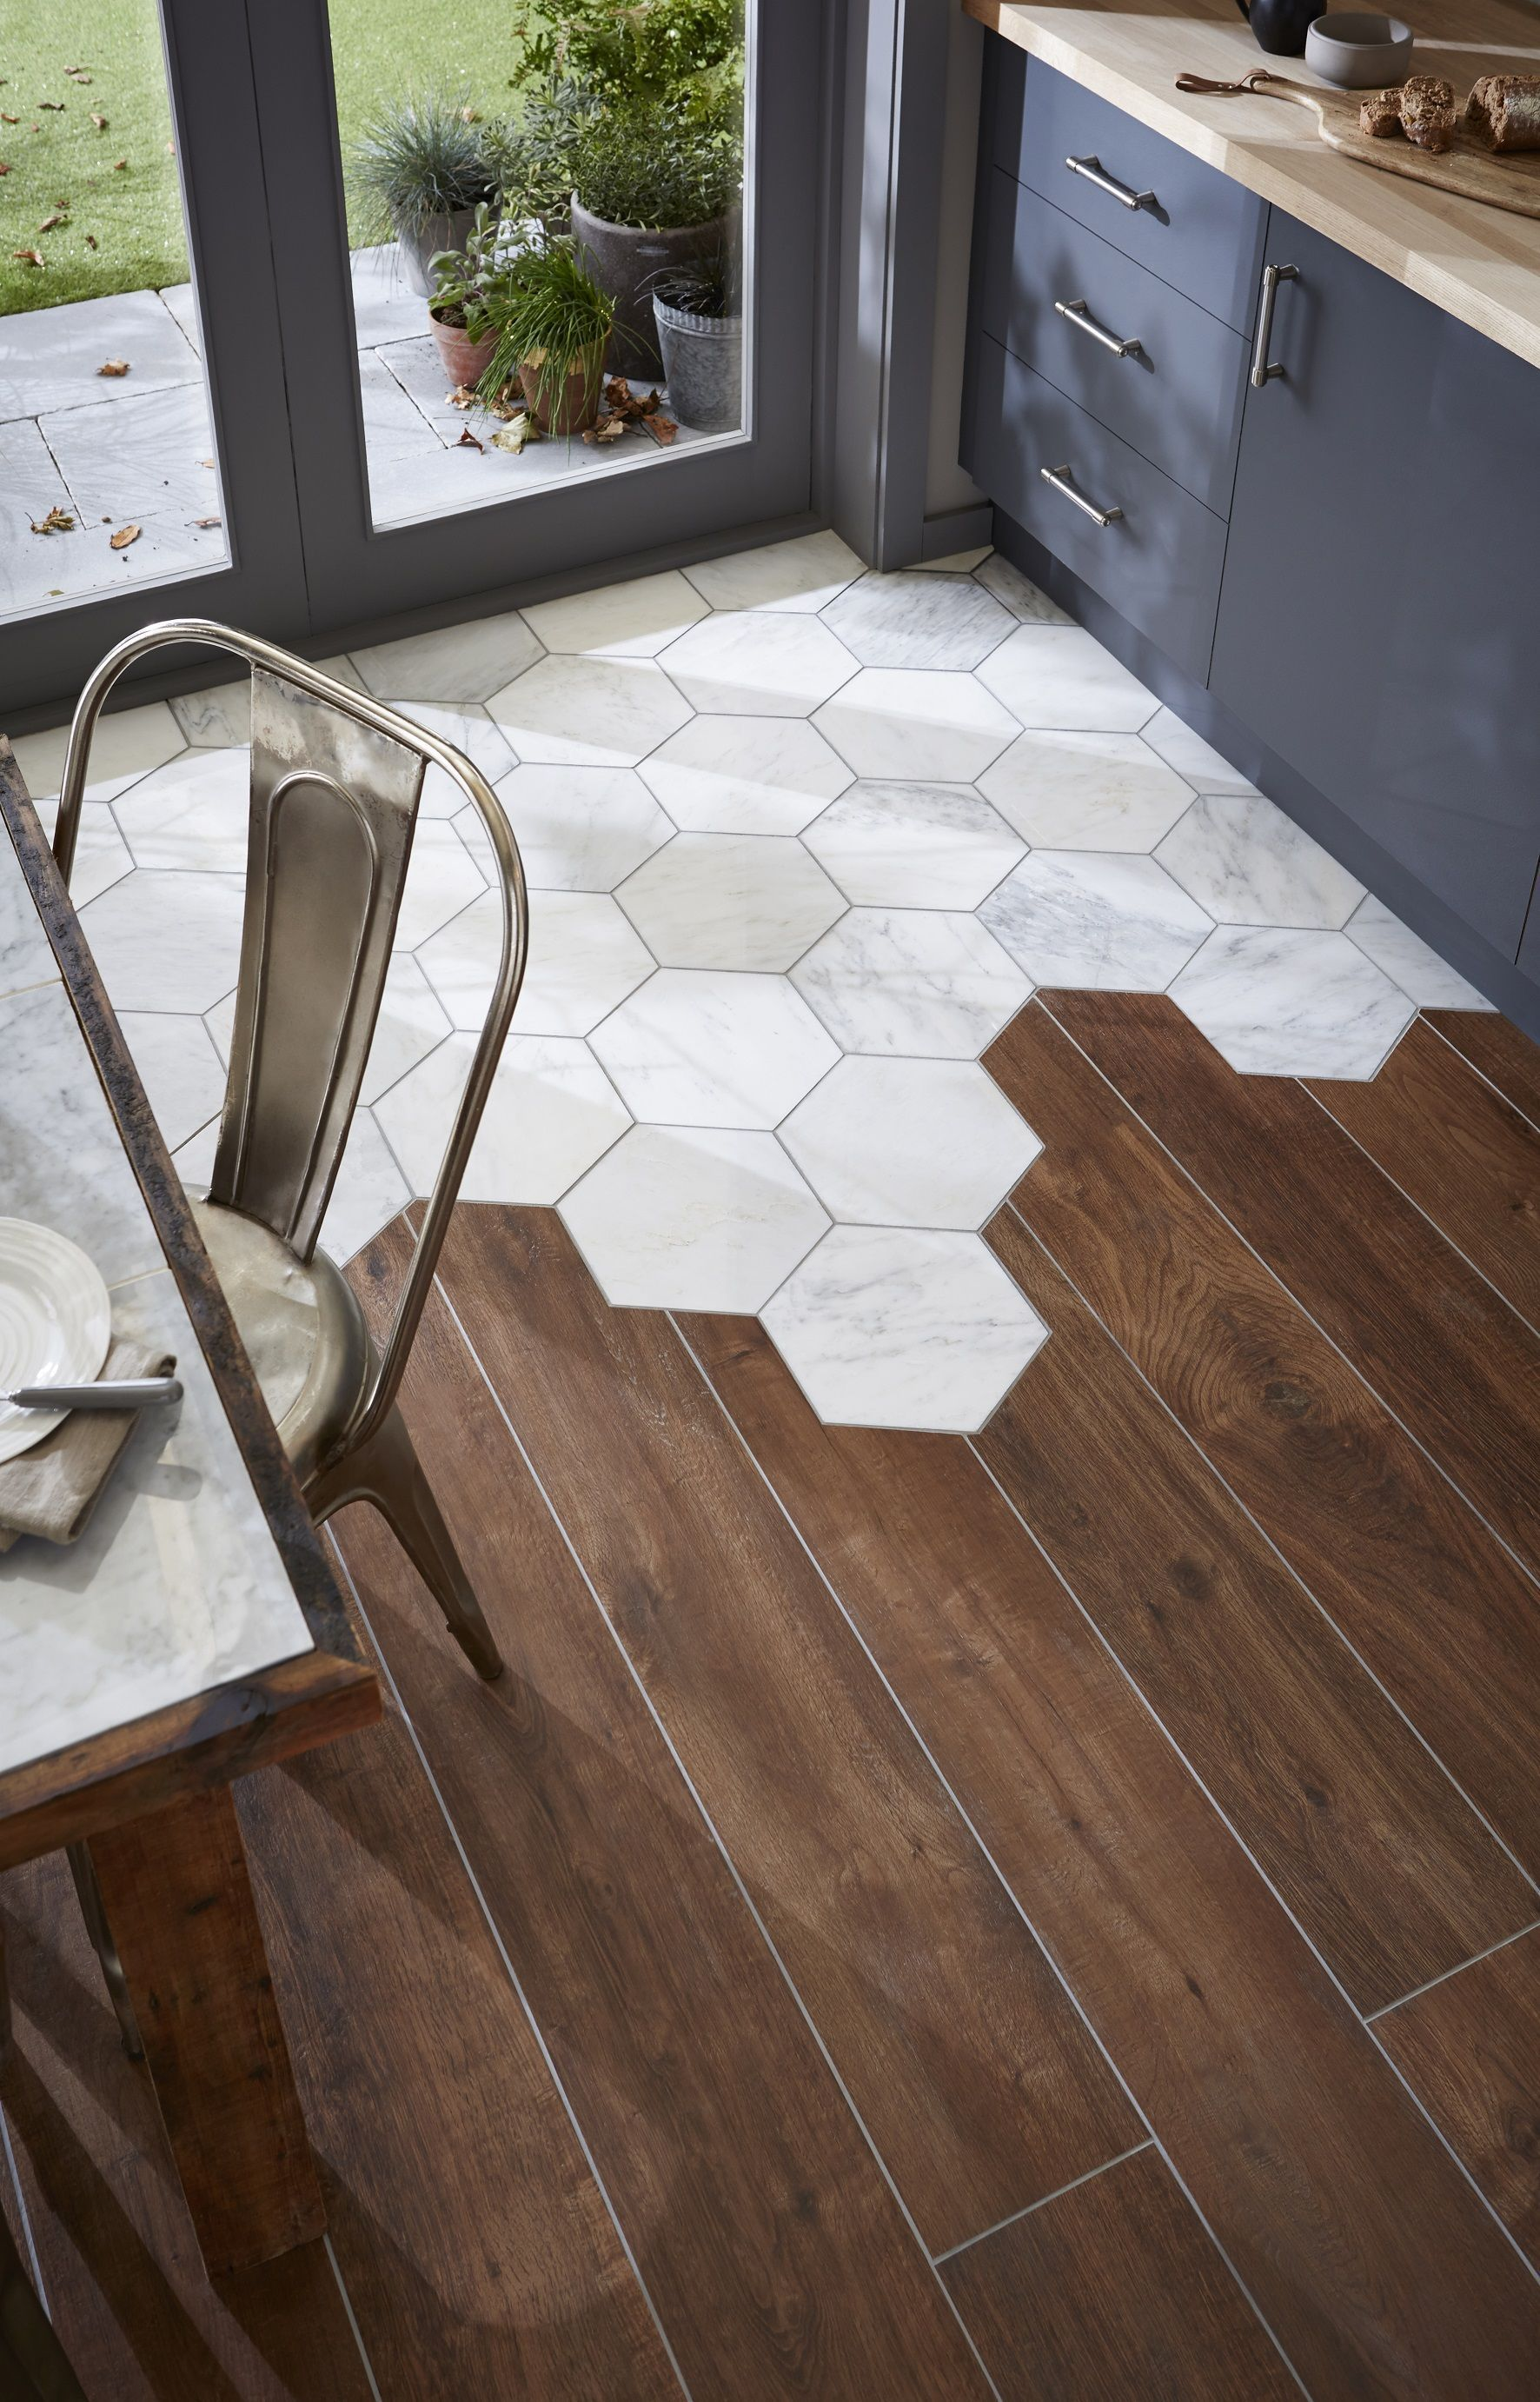 19 Flooring Transitions From Wood To Tile Living Room Tiles